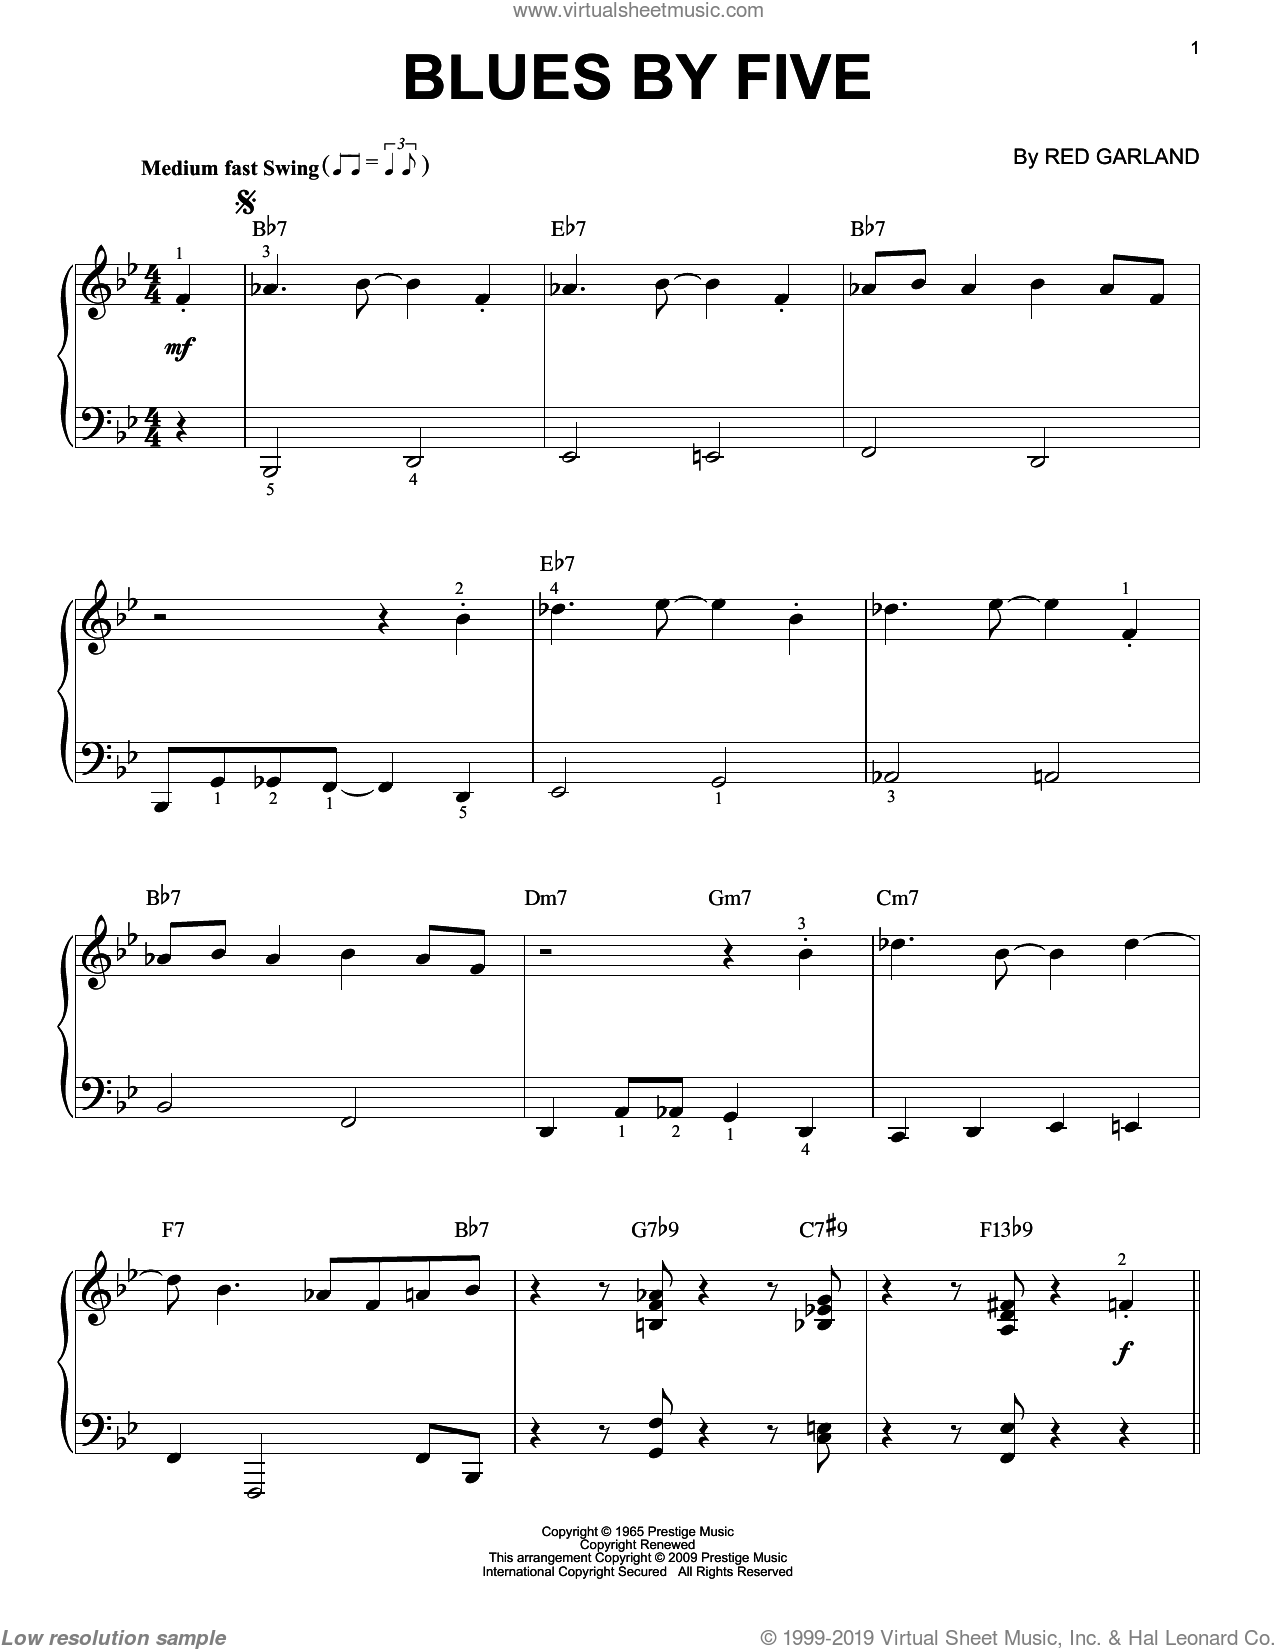 Blues By Five sheet music for piano solo by Miles Davis and Red Garland, intermediate skill level